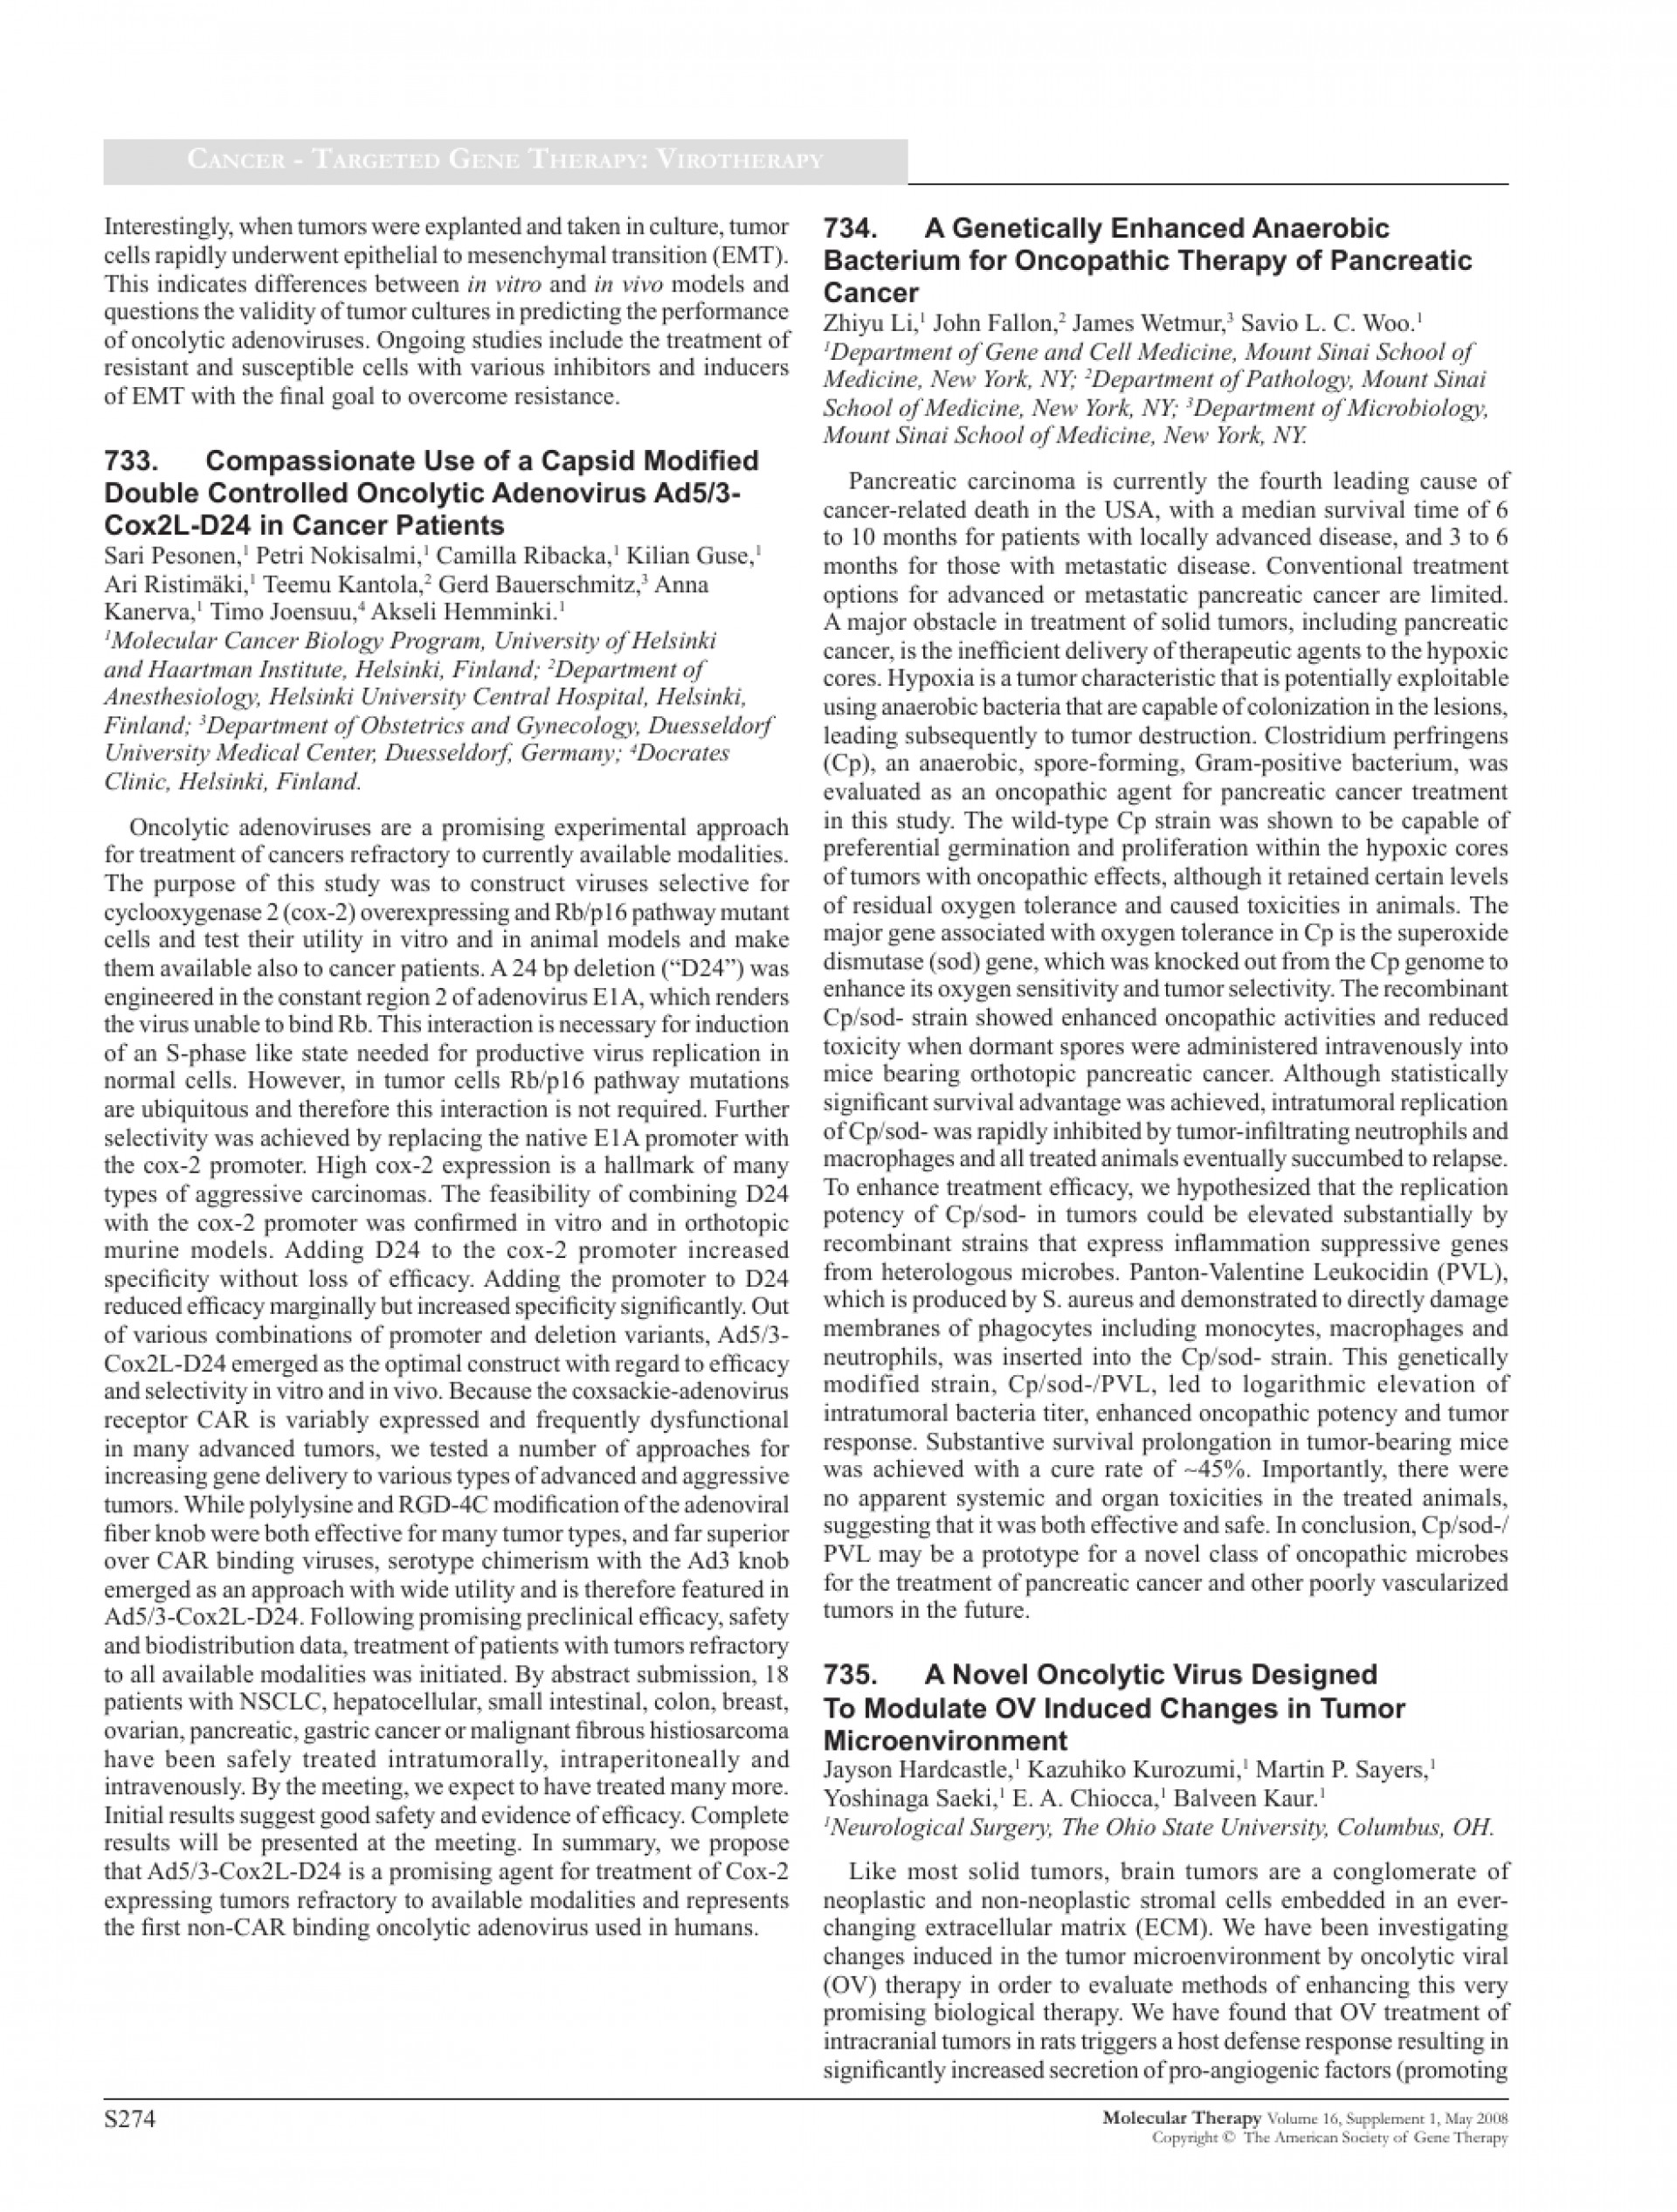 014 Research Paper Cancer Shocking Questions 1920